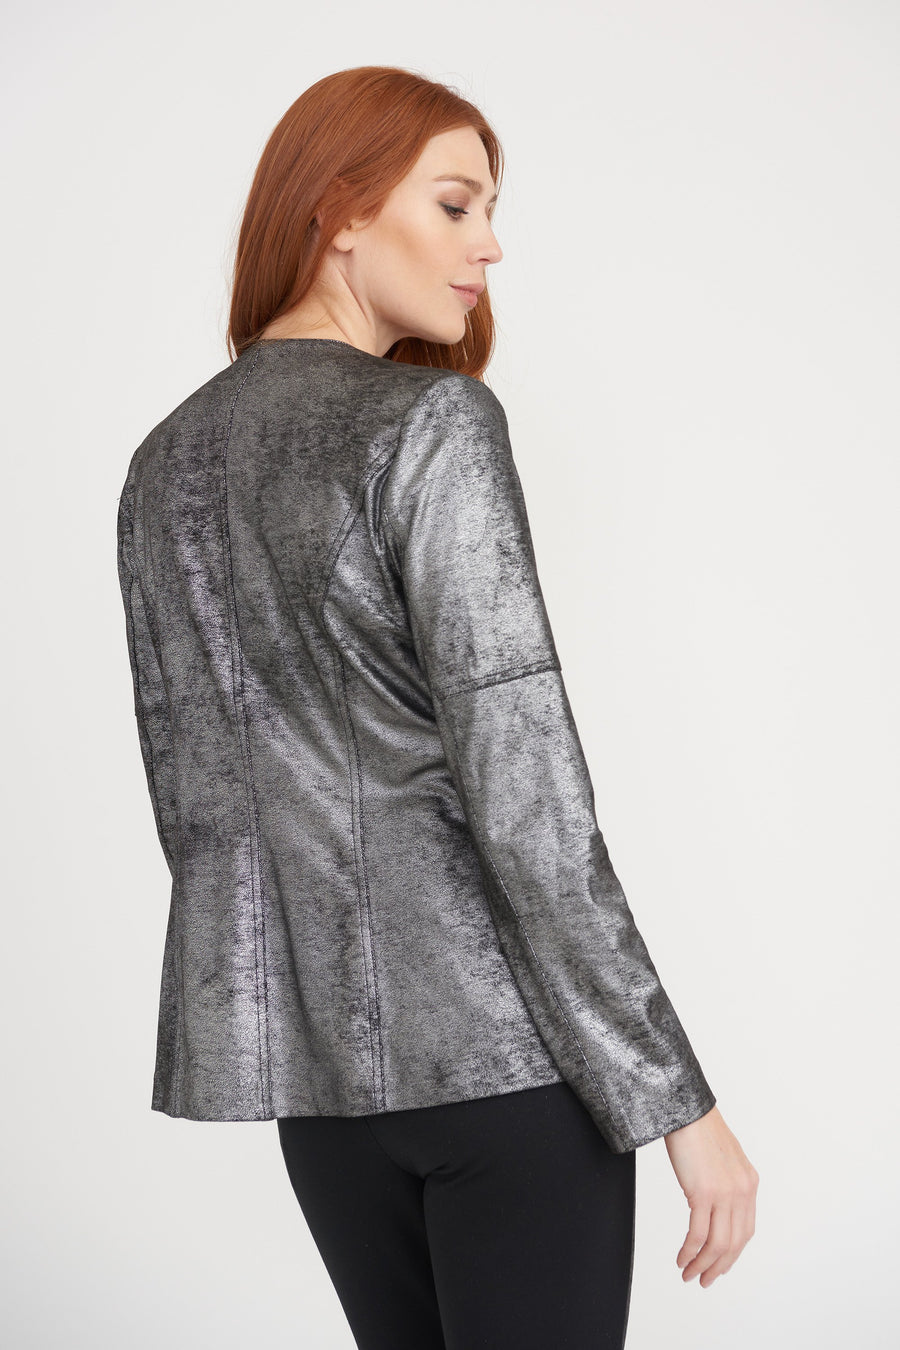 Joseph Ribkoff Ladies Jacket Style 203271